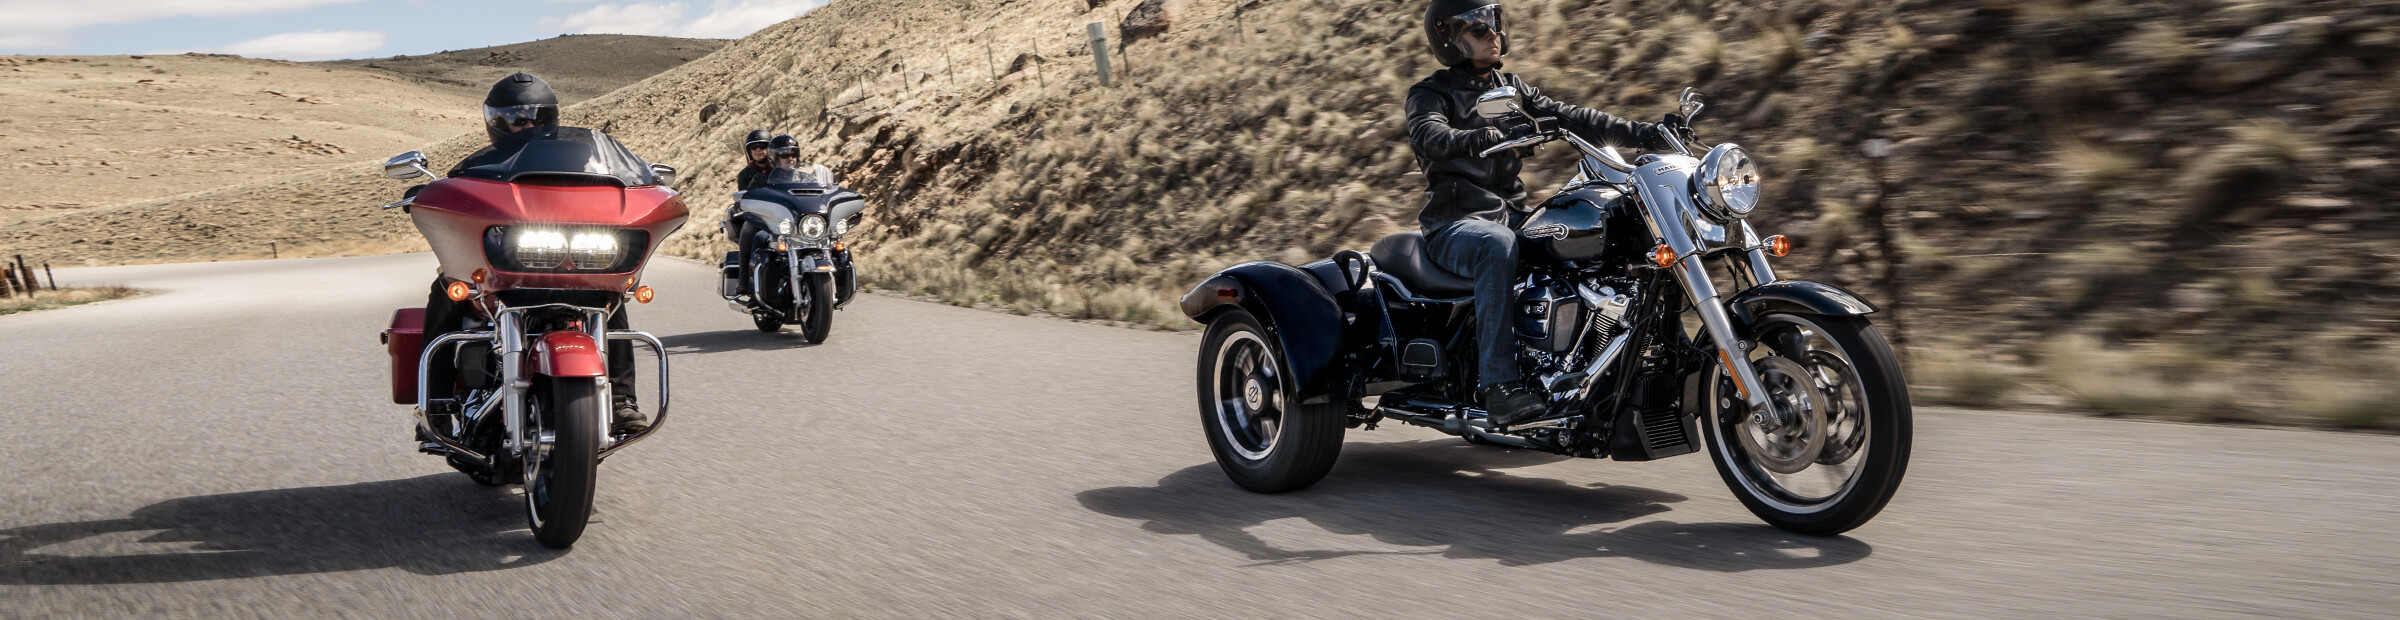 Learn to ride at Farrow East Harley-Davidson®